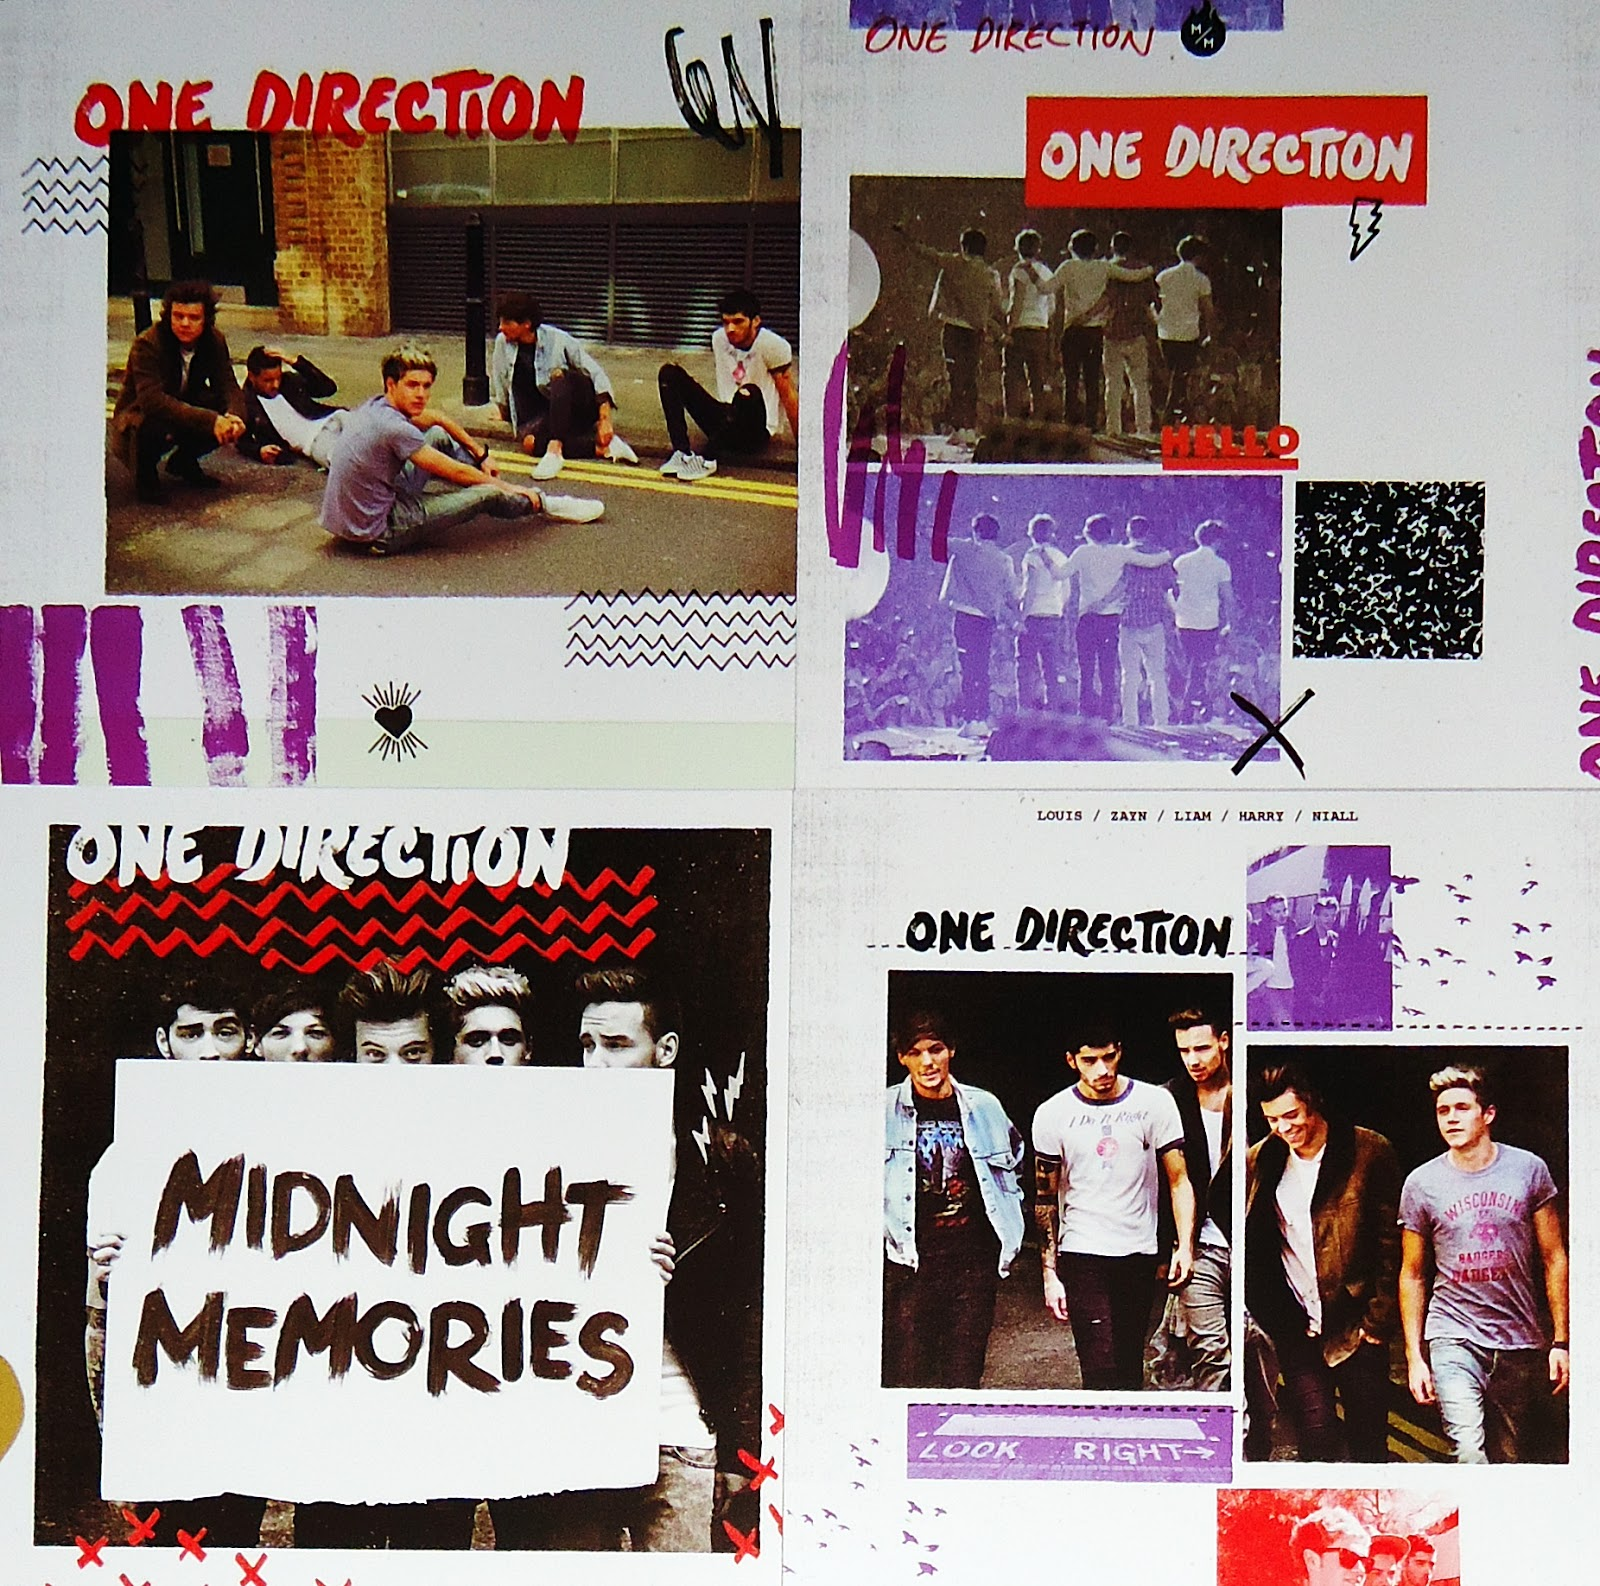 My Collection: One Direction » Midnight Memories [Brasil]